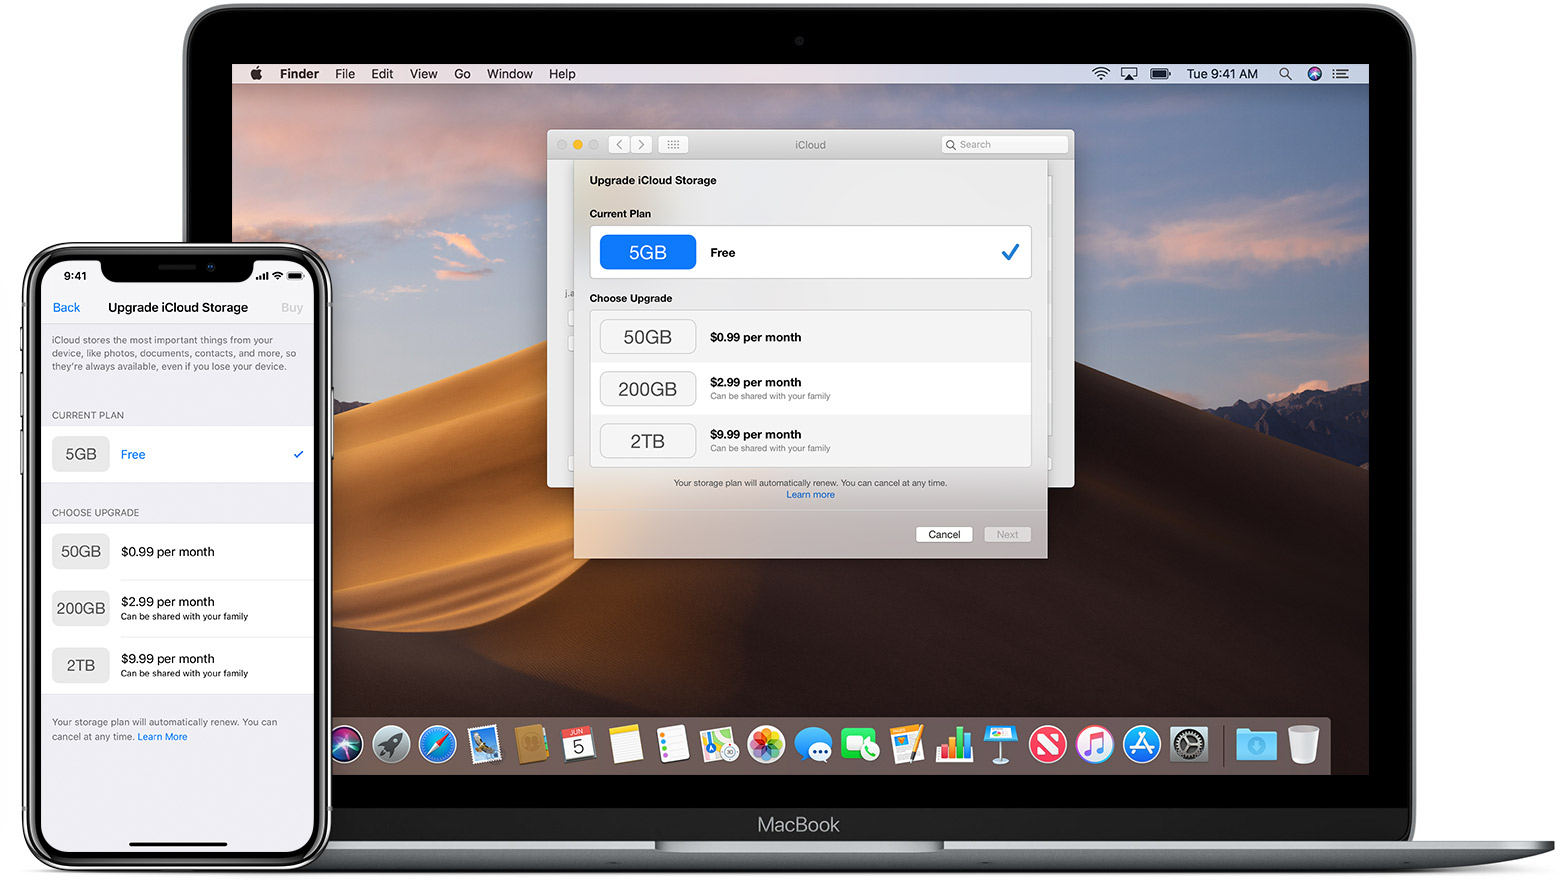 Upgrade iCloud Storage screen on iPhone and Mac